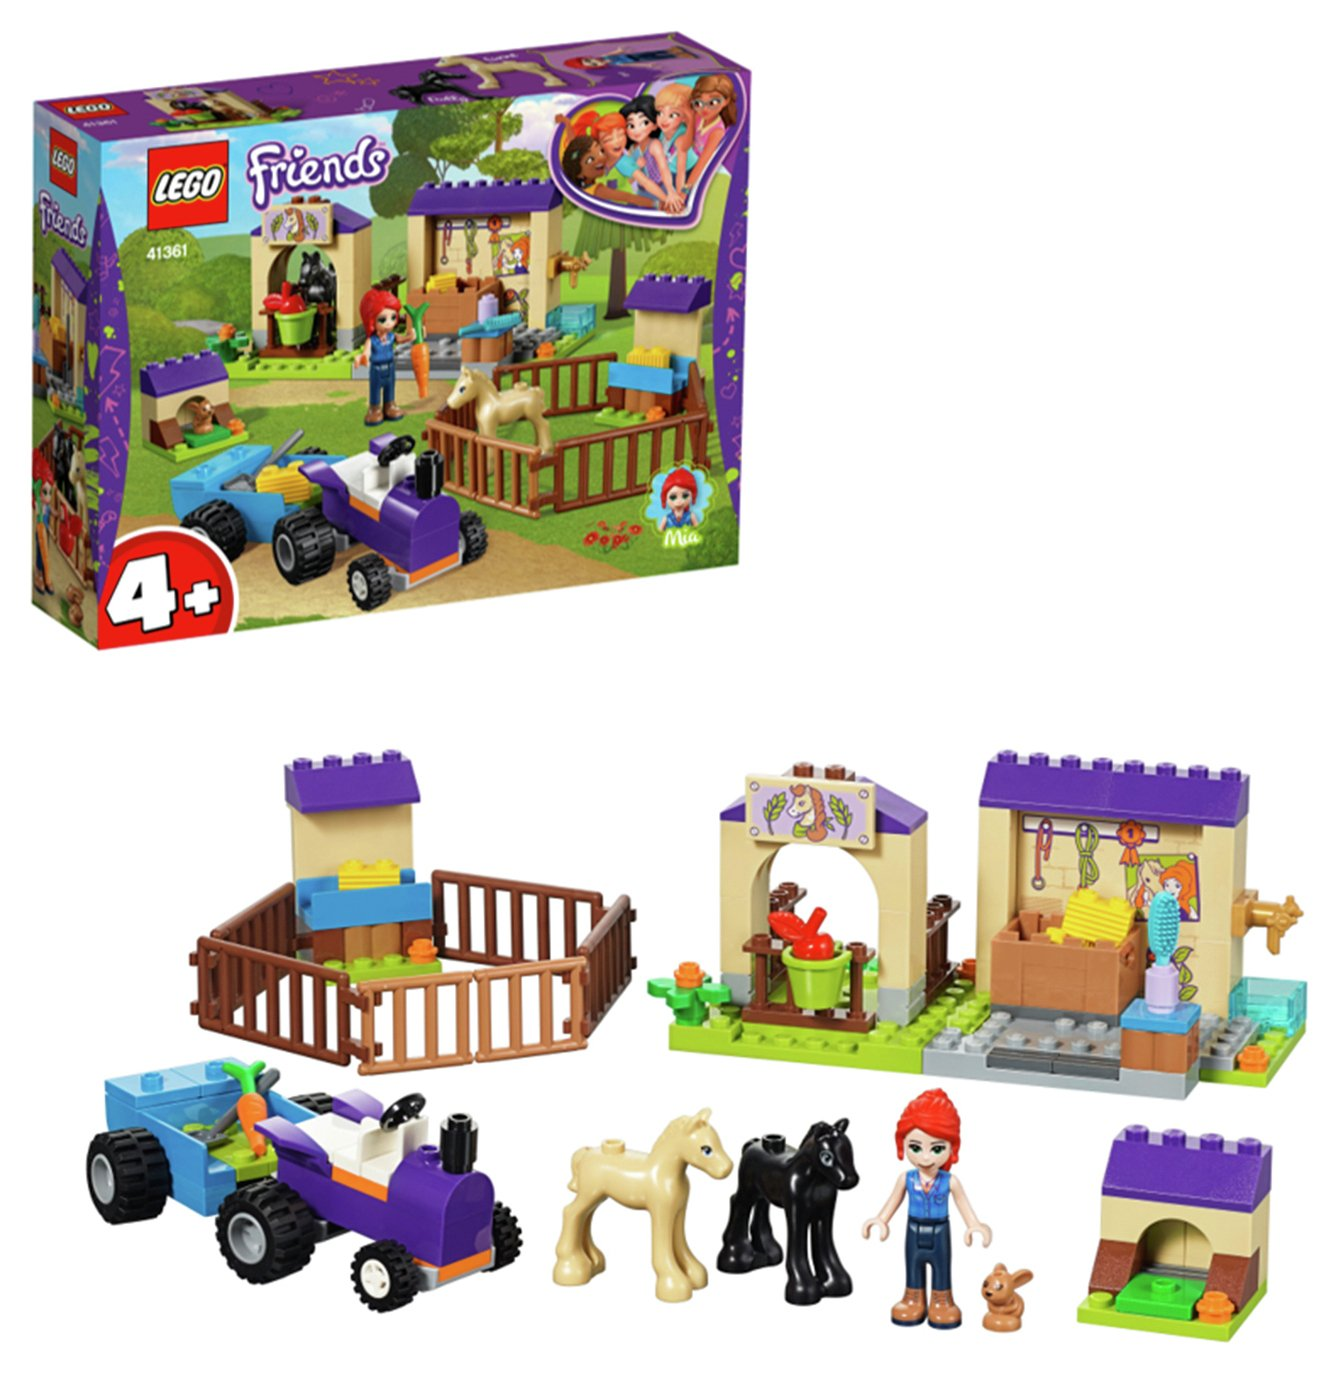 LEGO Friends Mia's Foal Stable Playset - 41361